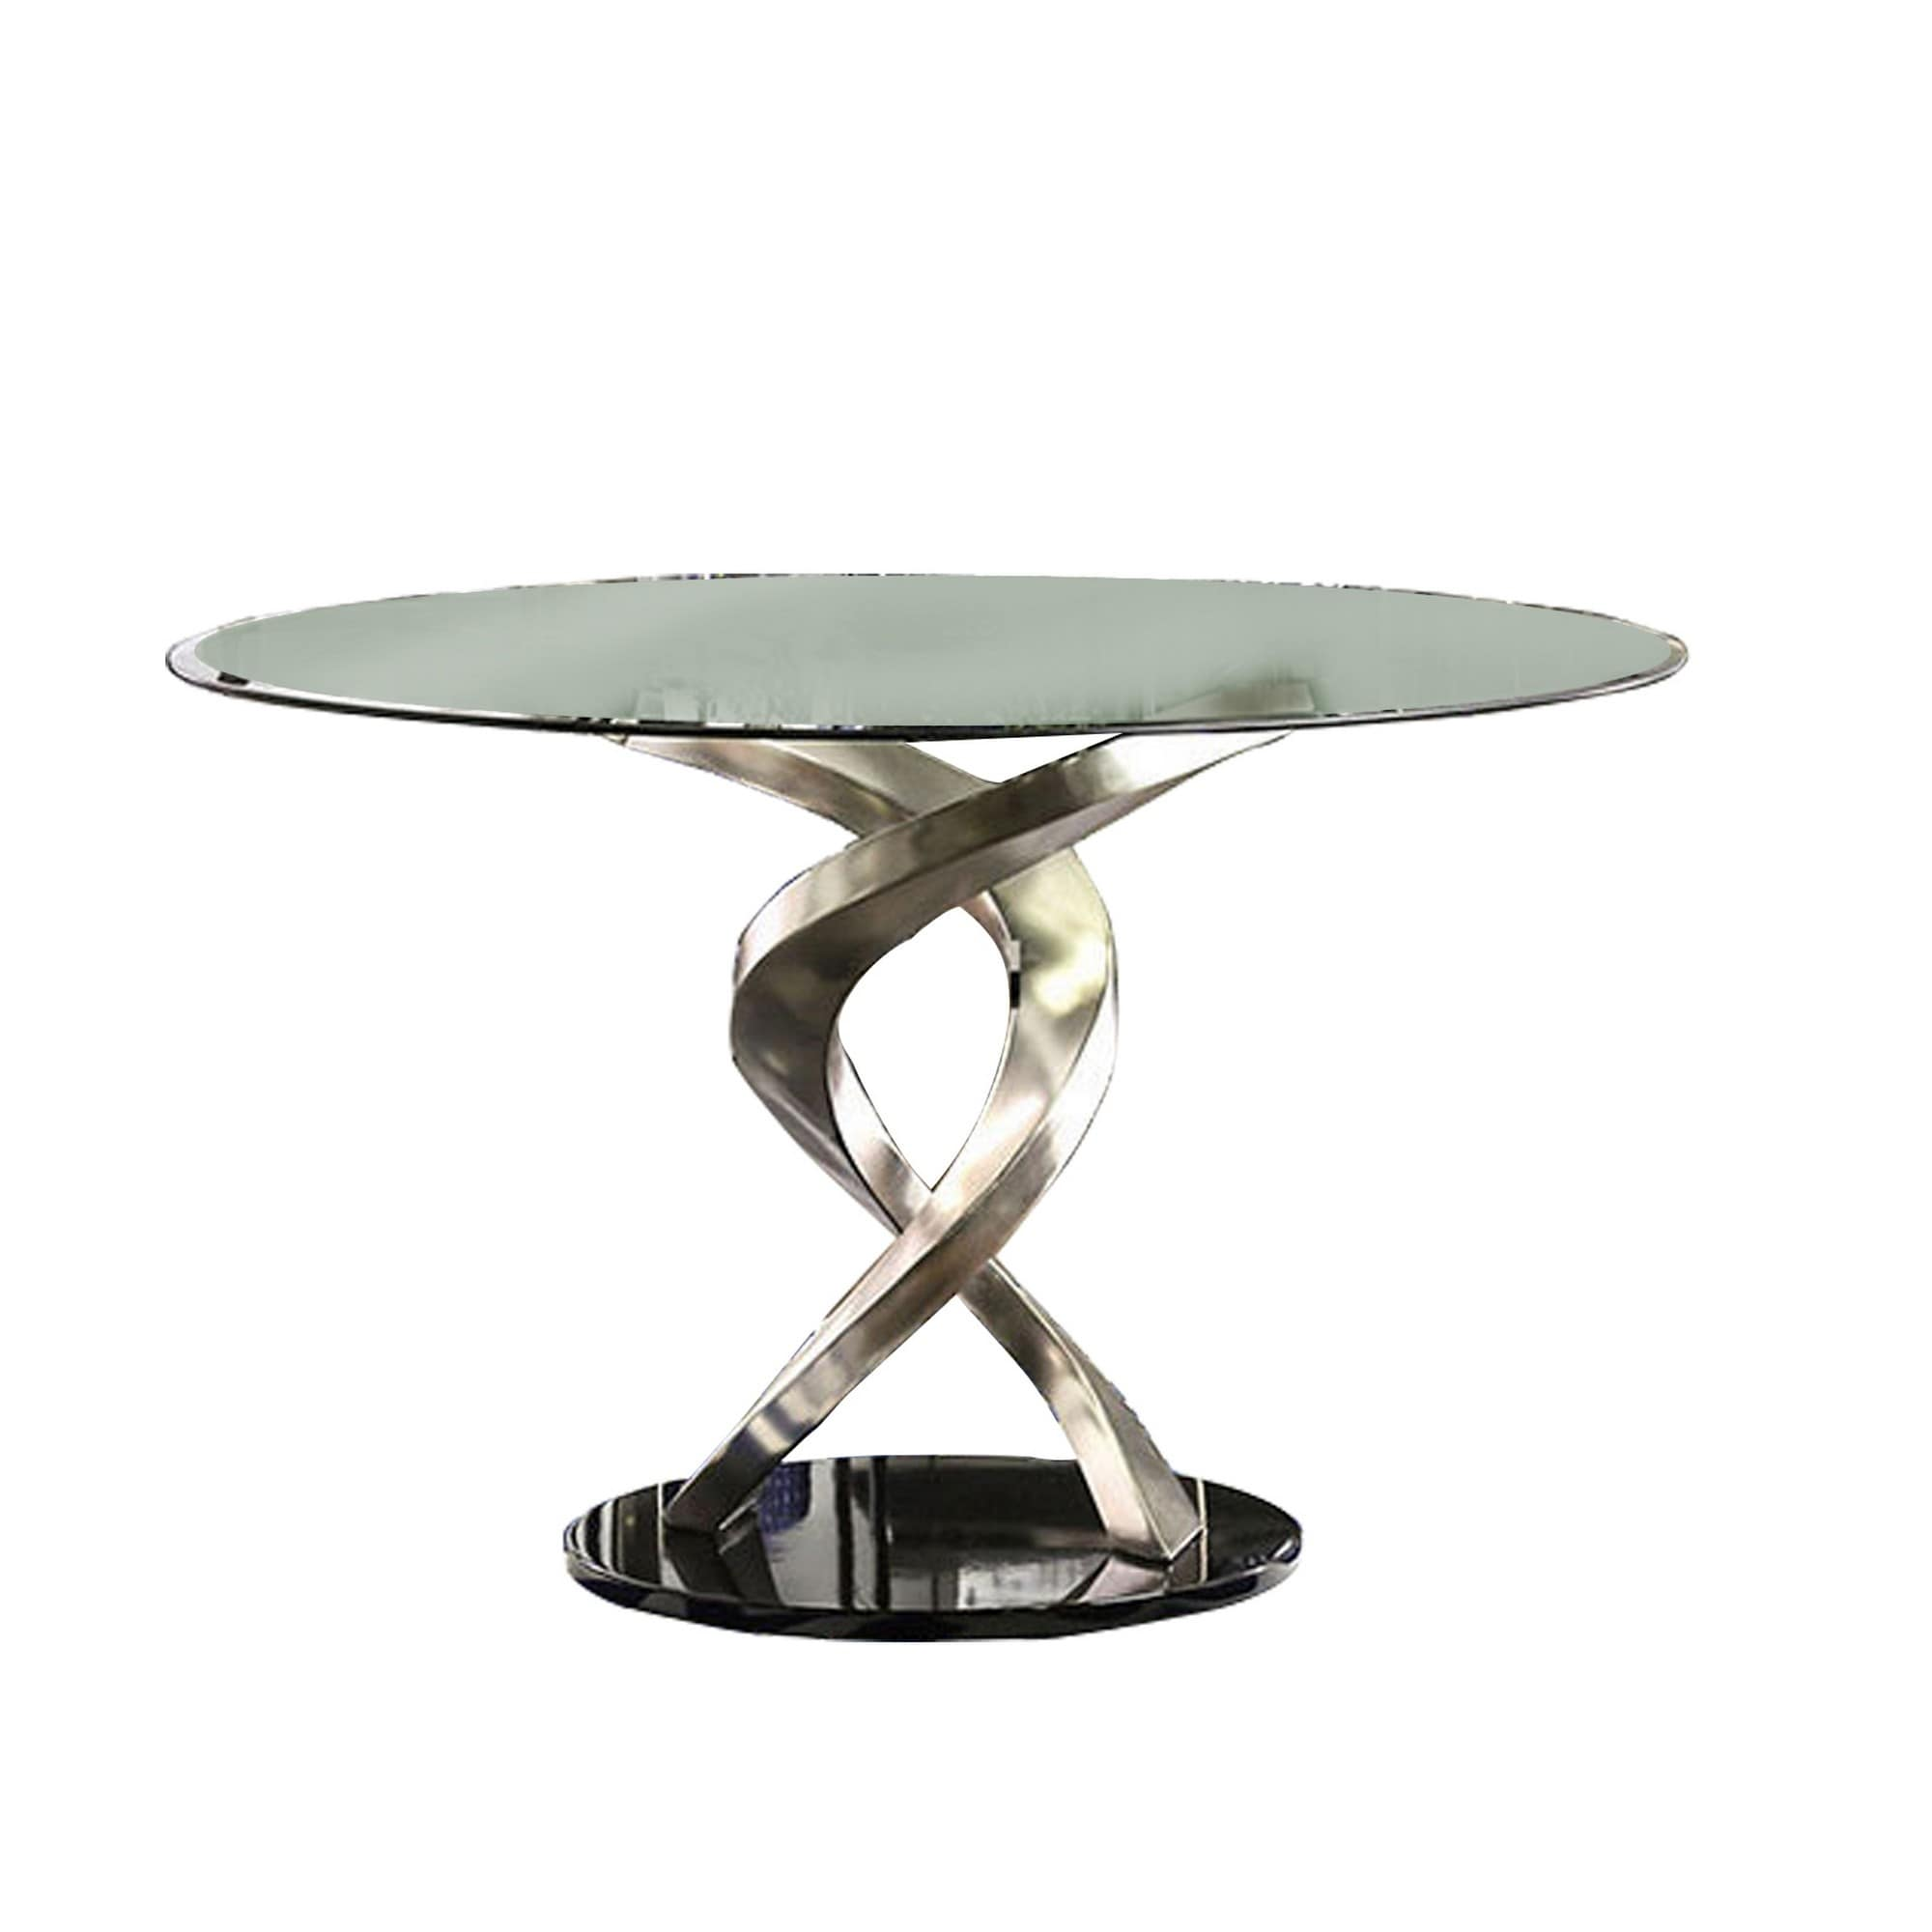 Contemporary Round Dining Table With Swirl Metal Base Black And Silver On Sale Overstock 31314705